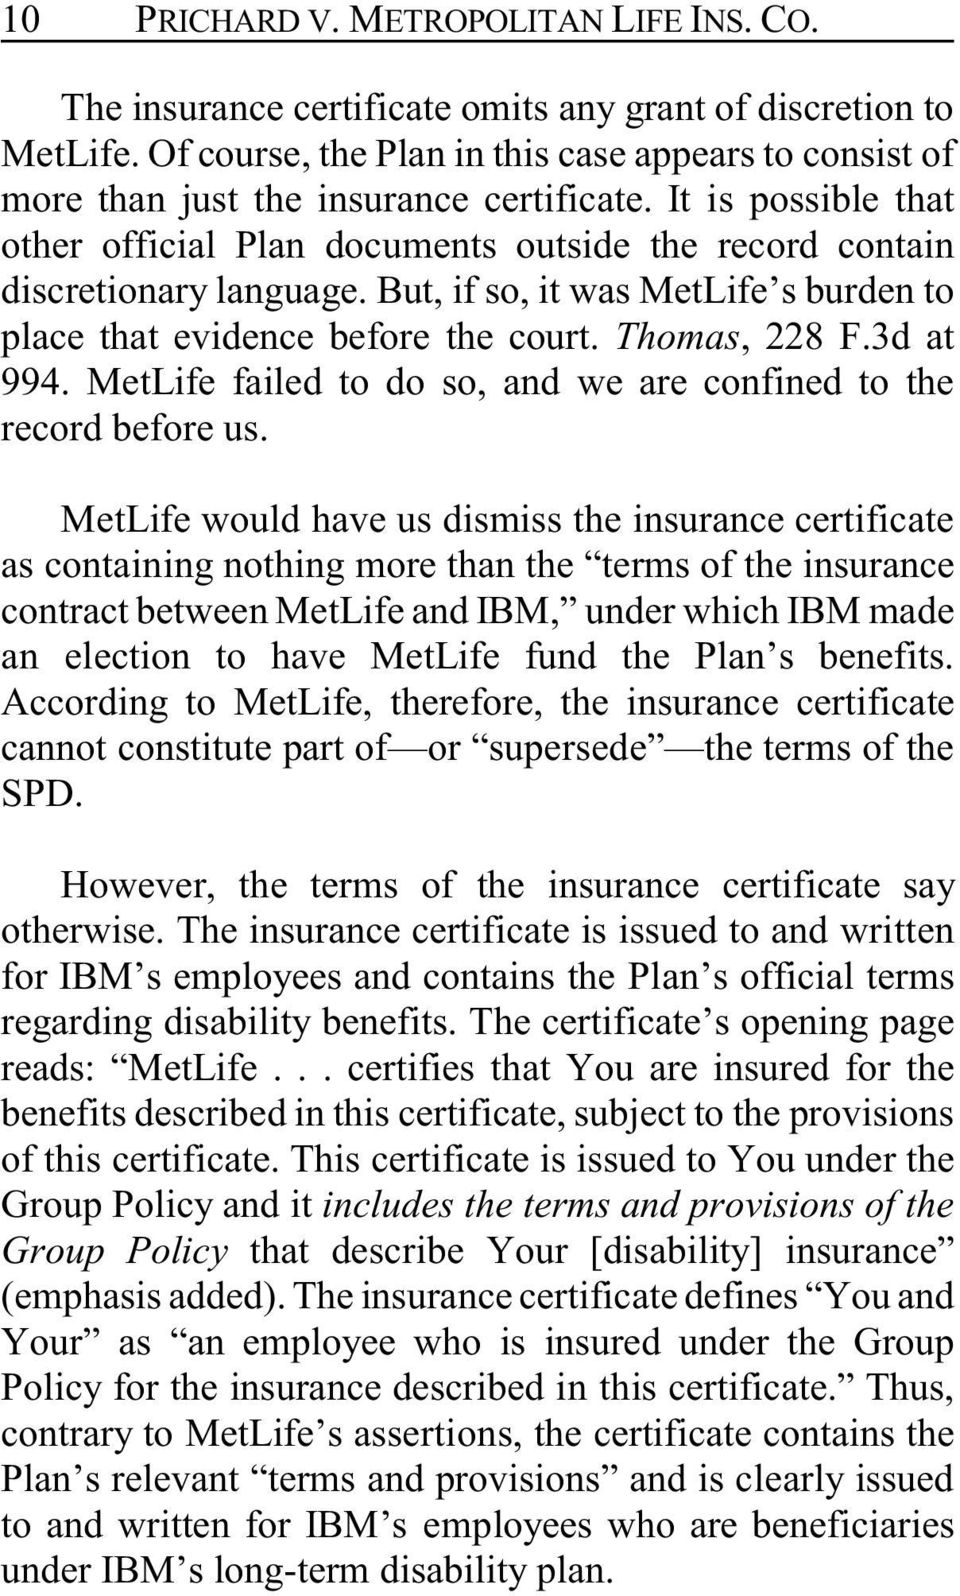 But, if so, it was MetLife s burden to place that evidence before the court. Thomas, 228 F.3d at 994. MetLife failed to do so, and we are confined to the record before us.